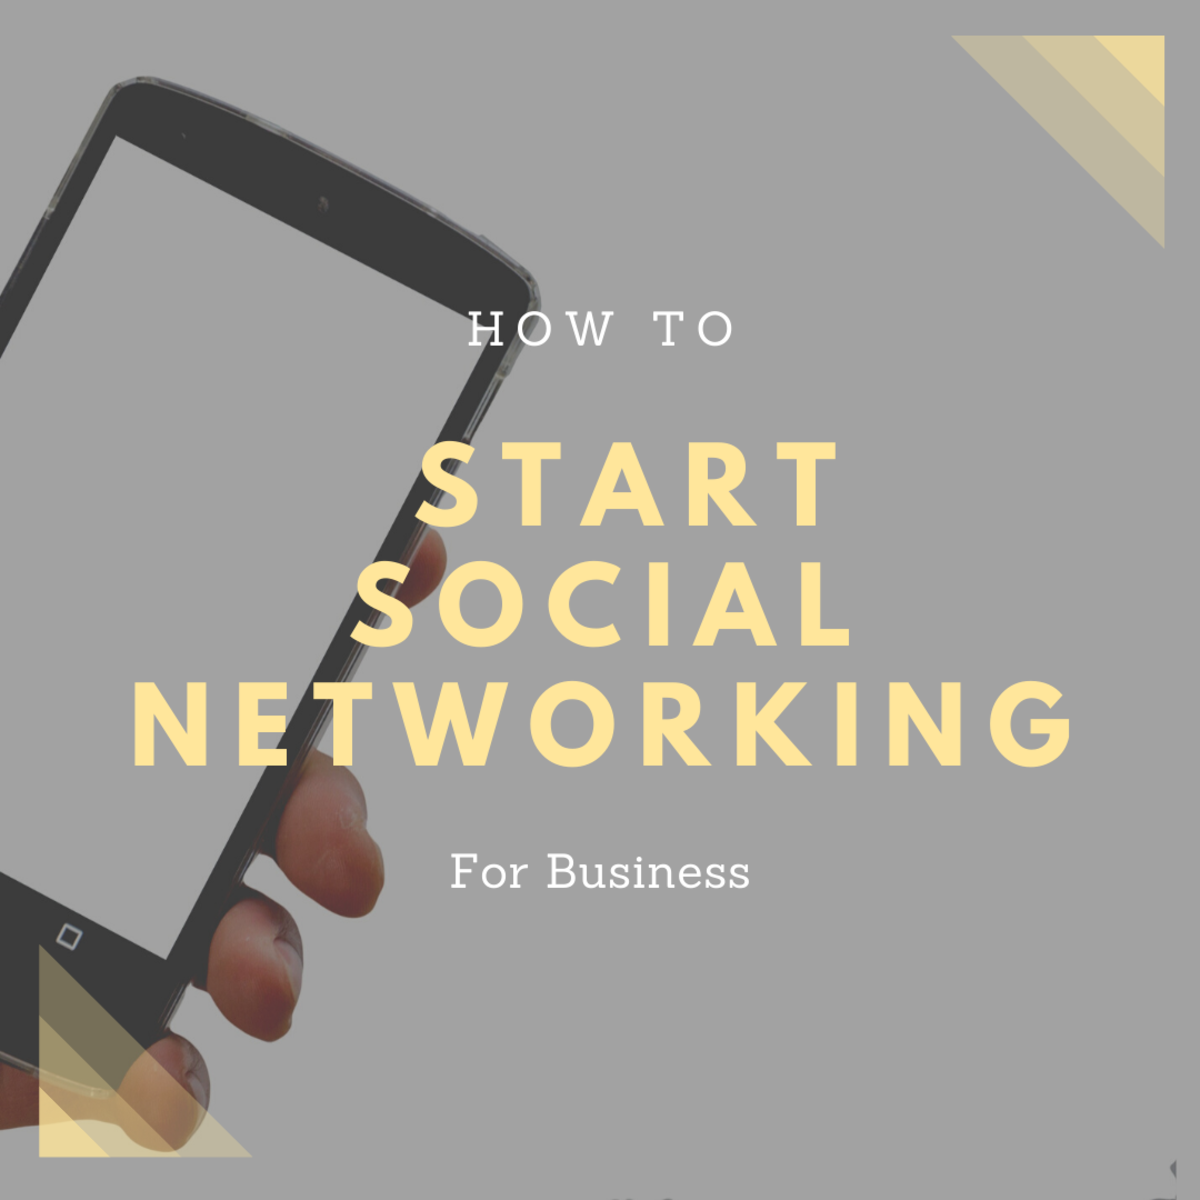 How Should a Business Start Social Networking?